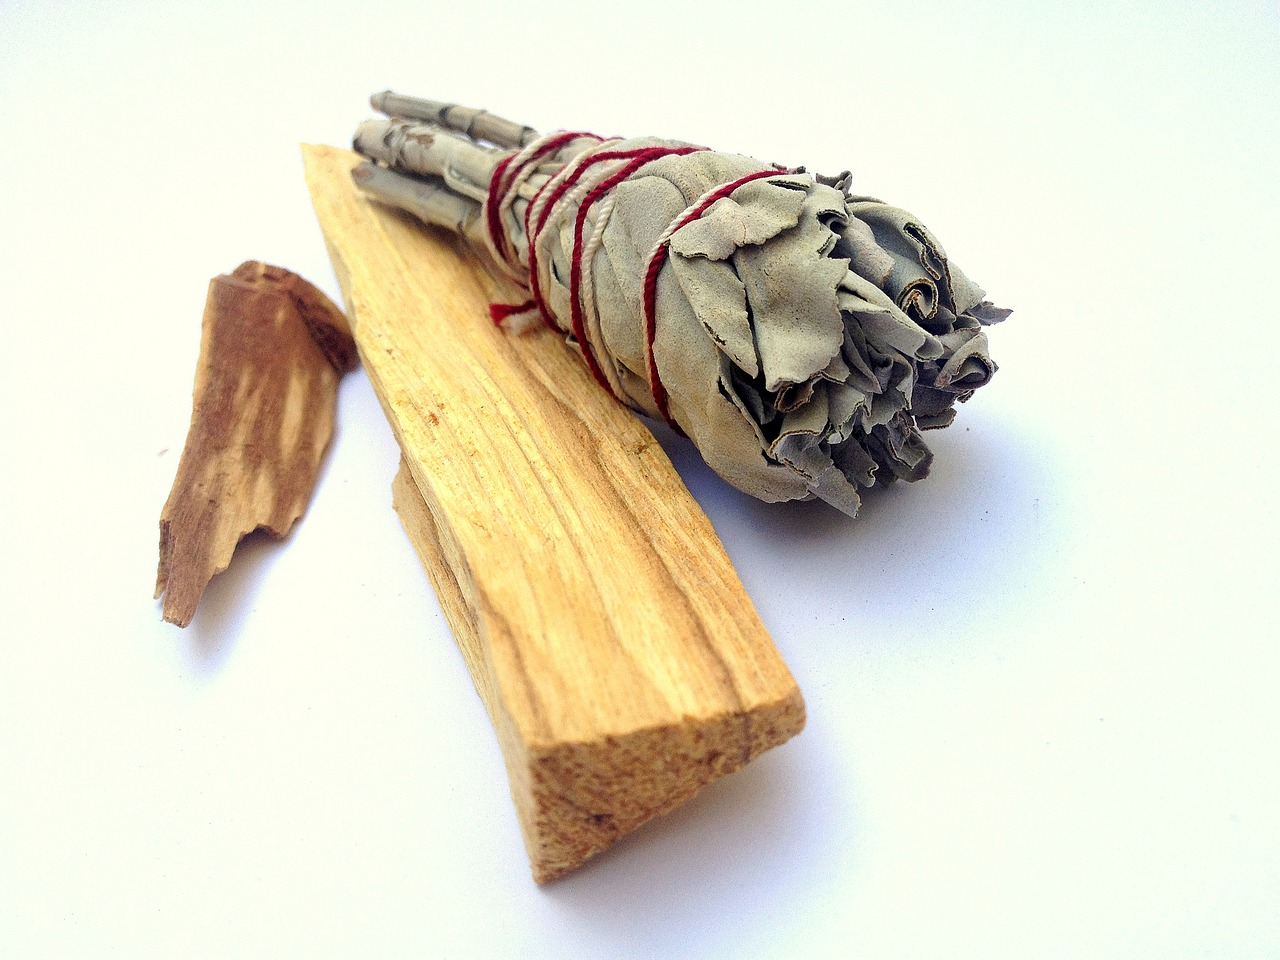 Palo Santo and White Sage (Image: Pixabay)